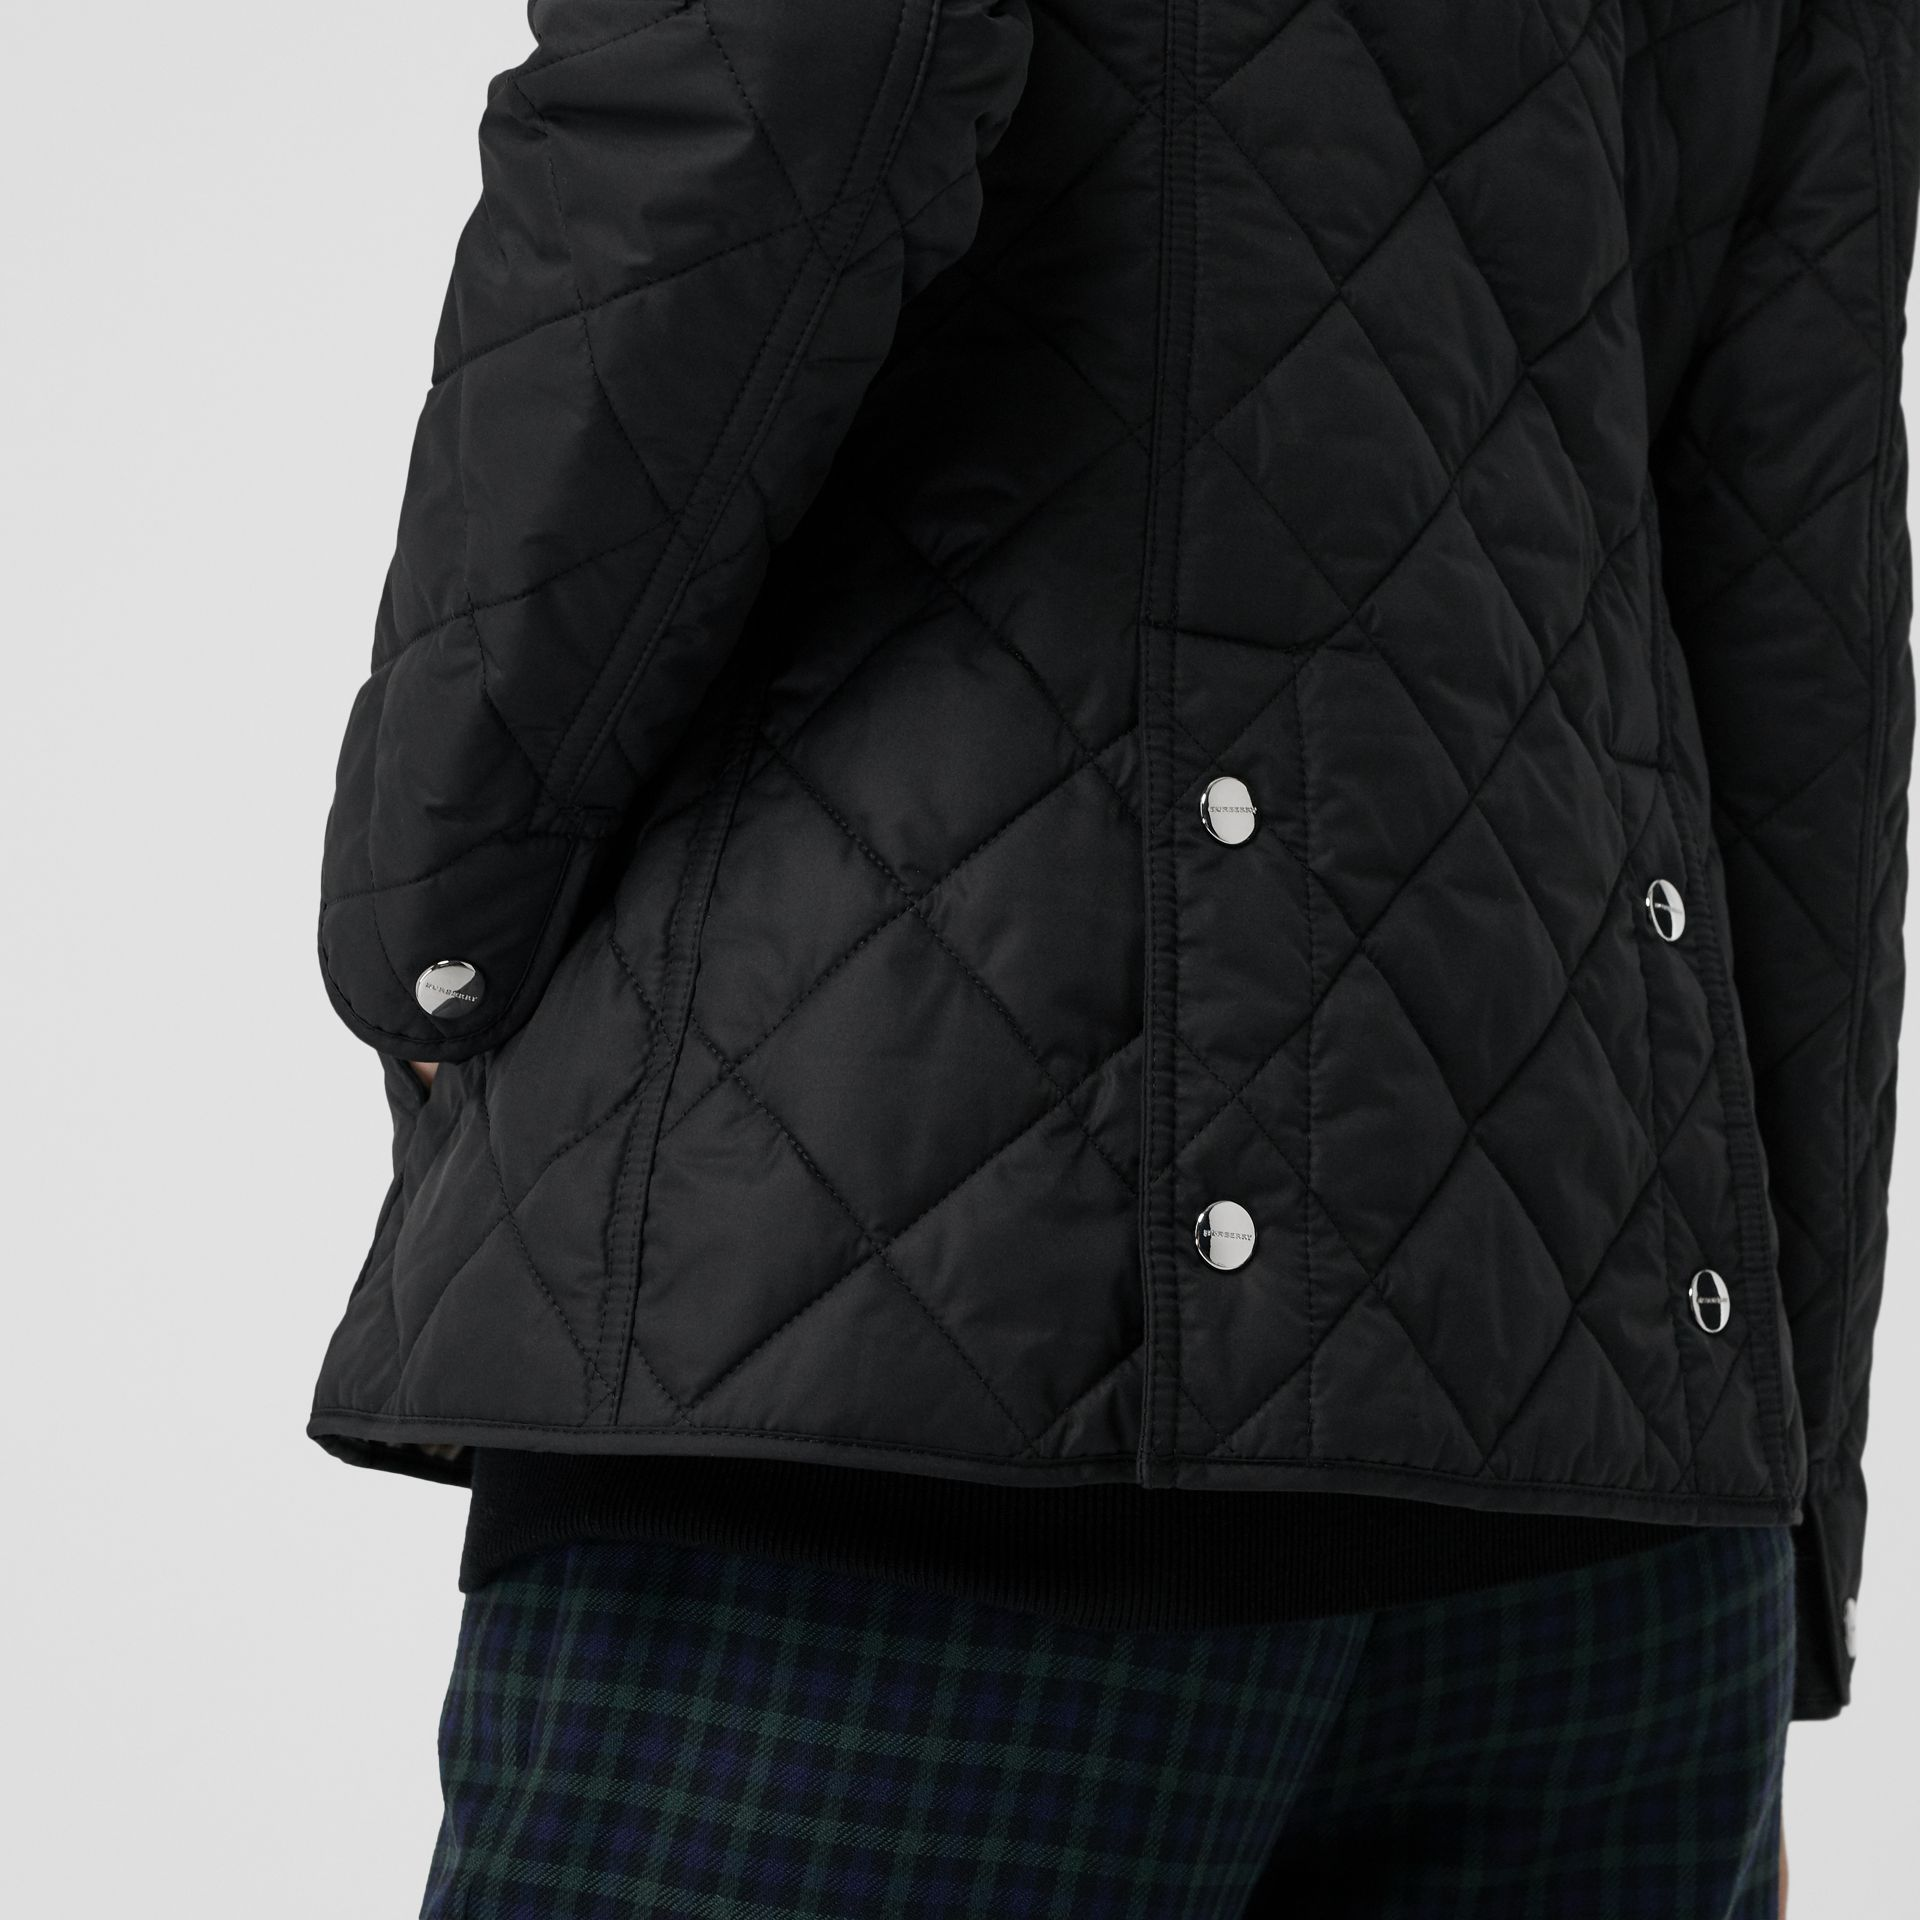 Embroidered Crest Diamond Quilted Jacket in Black - Women | Burberry United States - gallery image 7